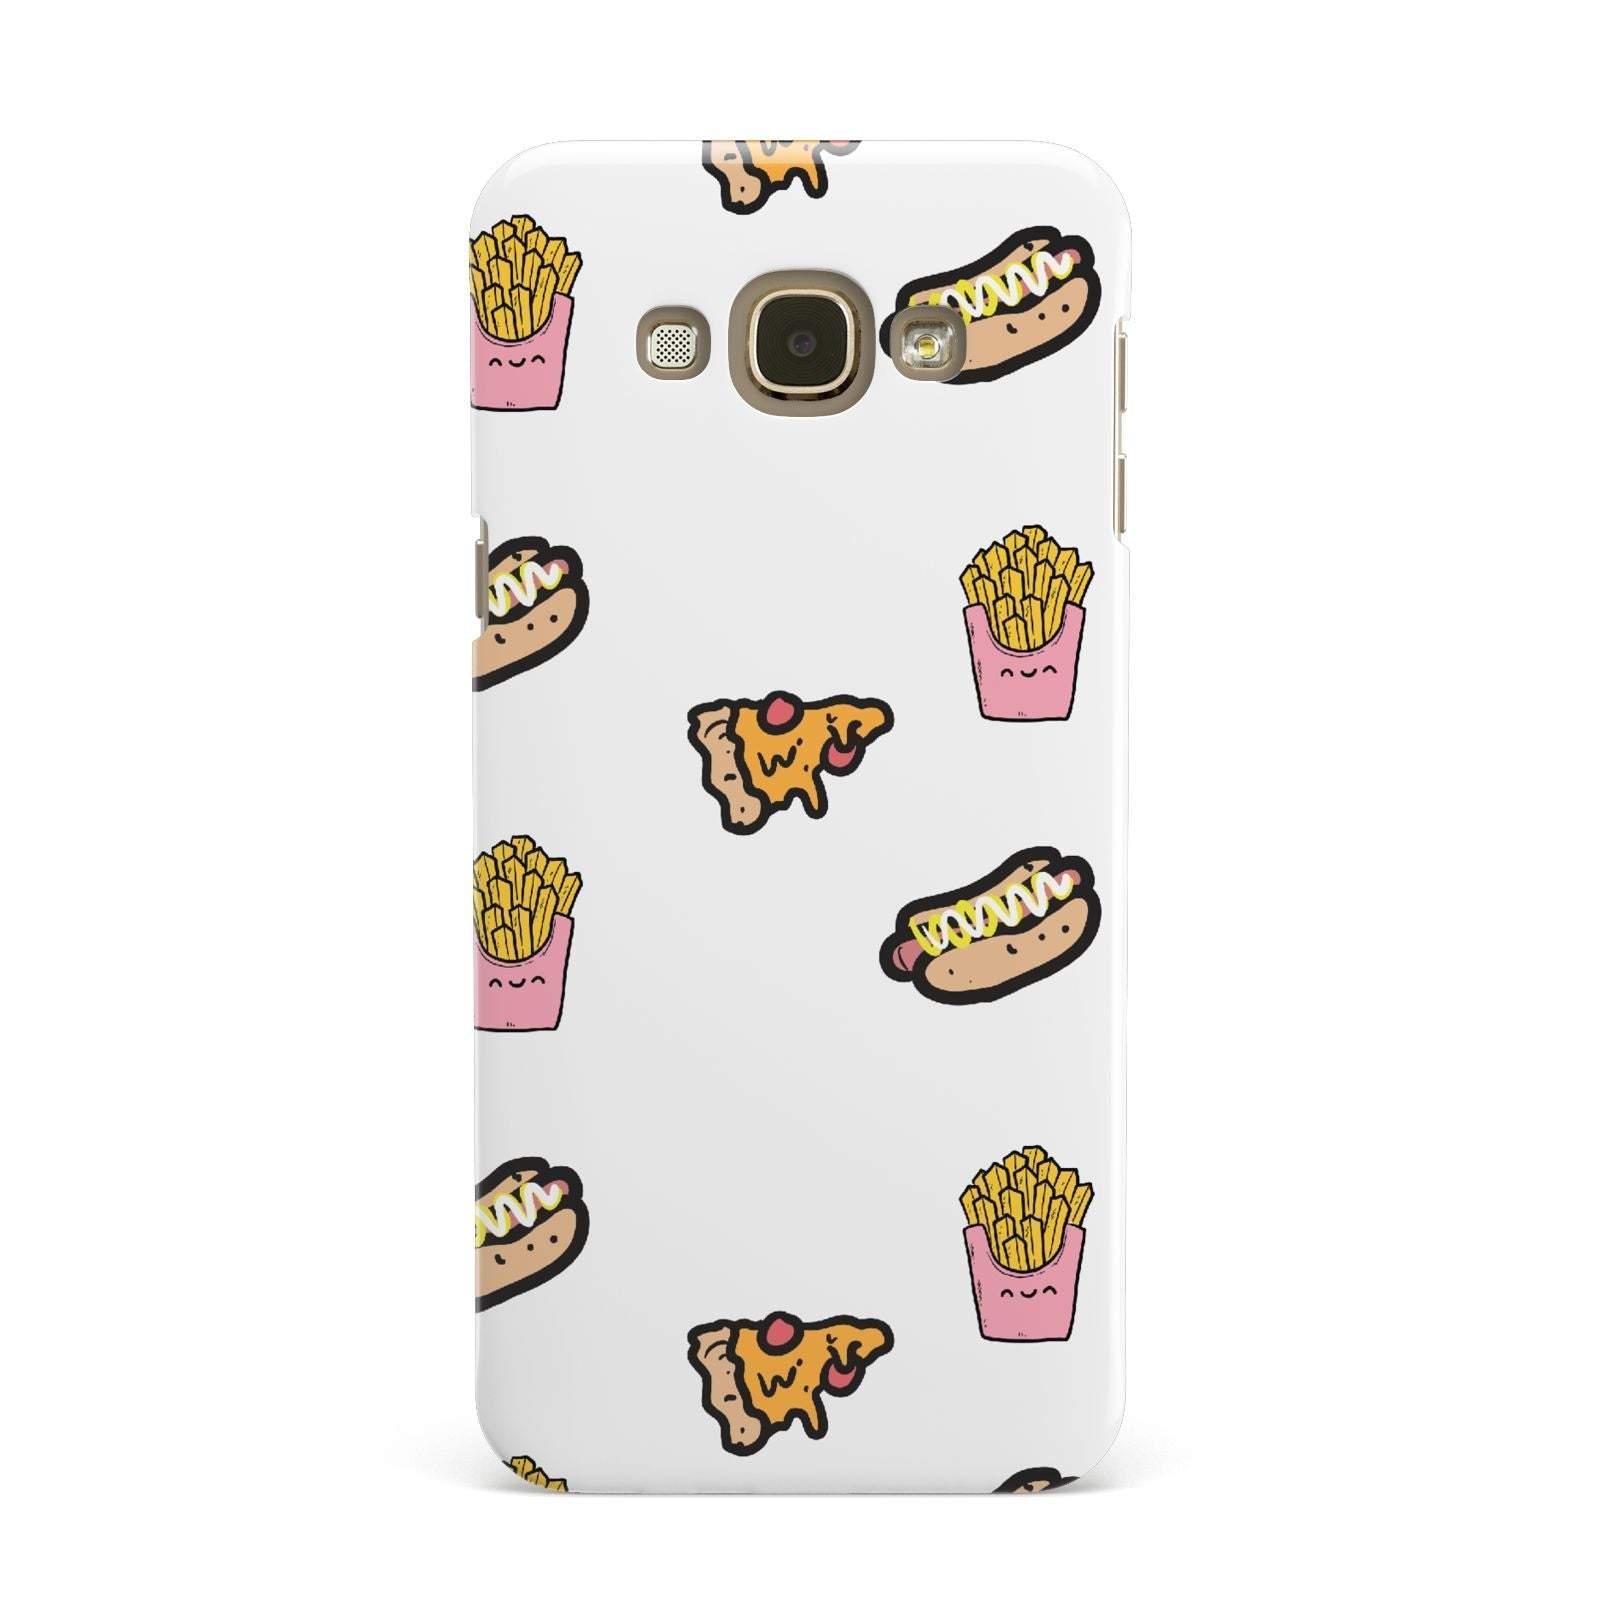 Fries Pizza Hot Dog Samsung Galaxy A8 Case